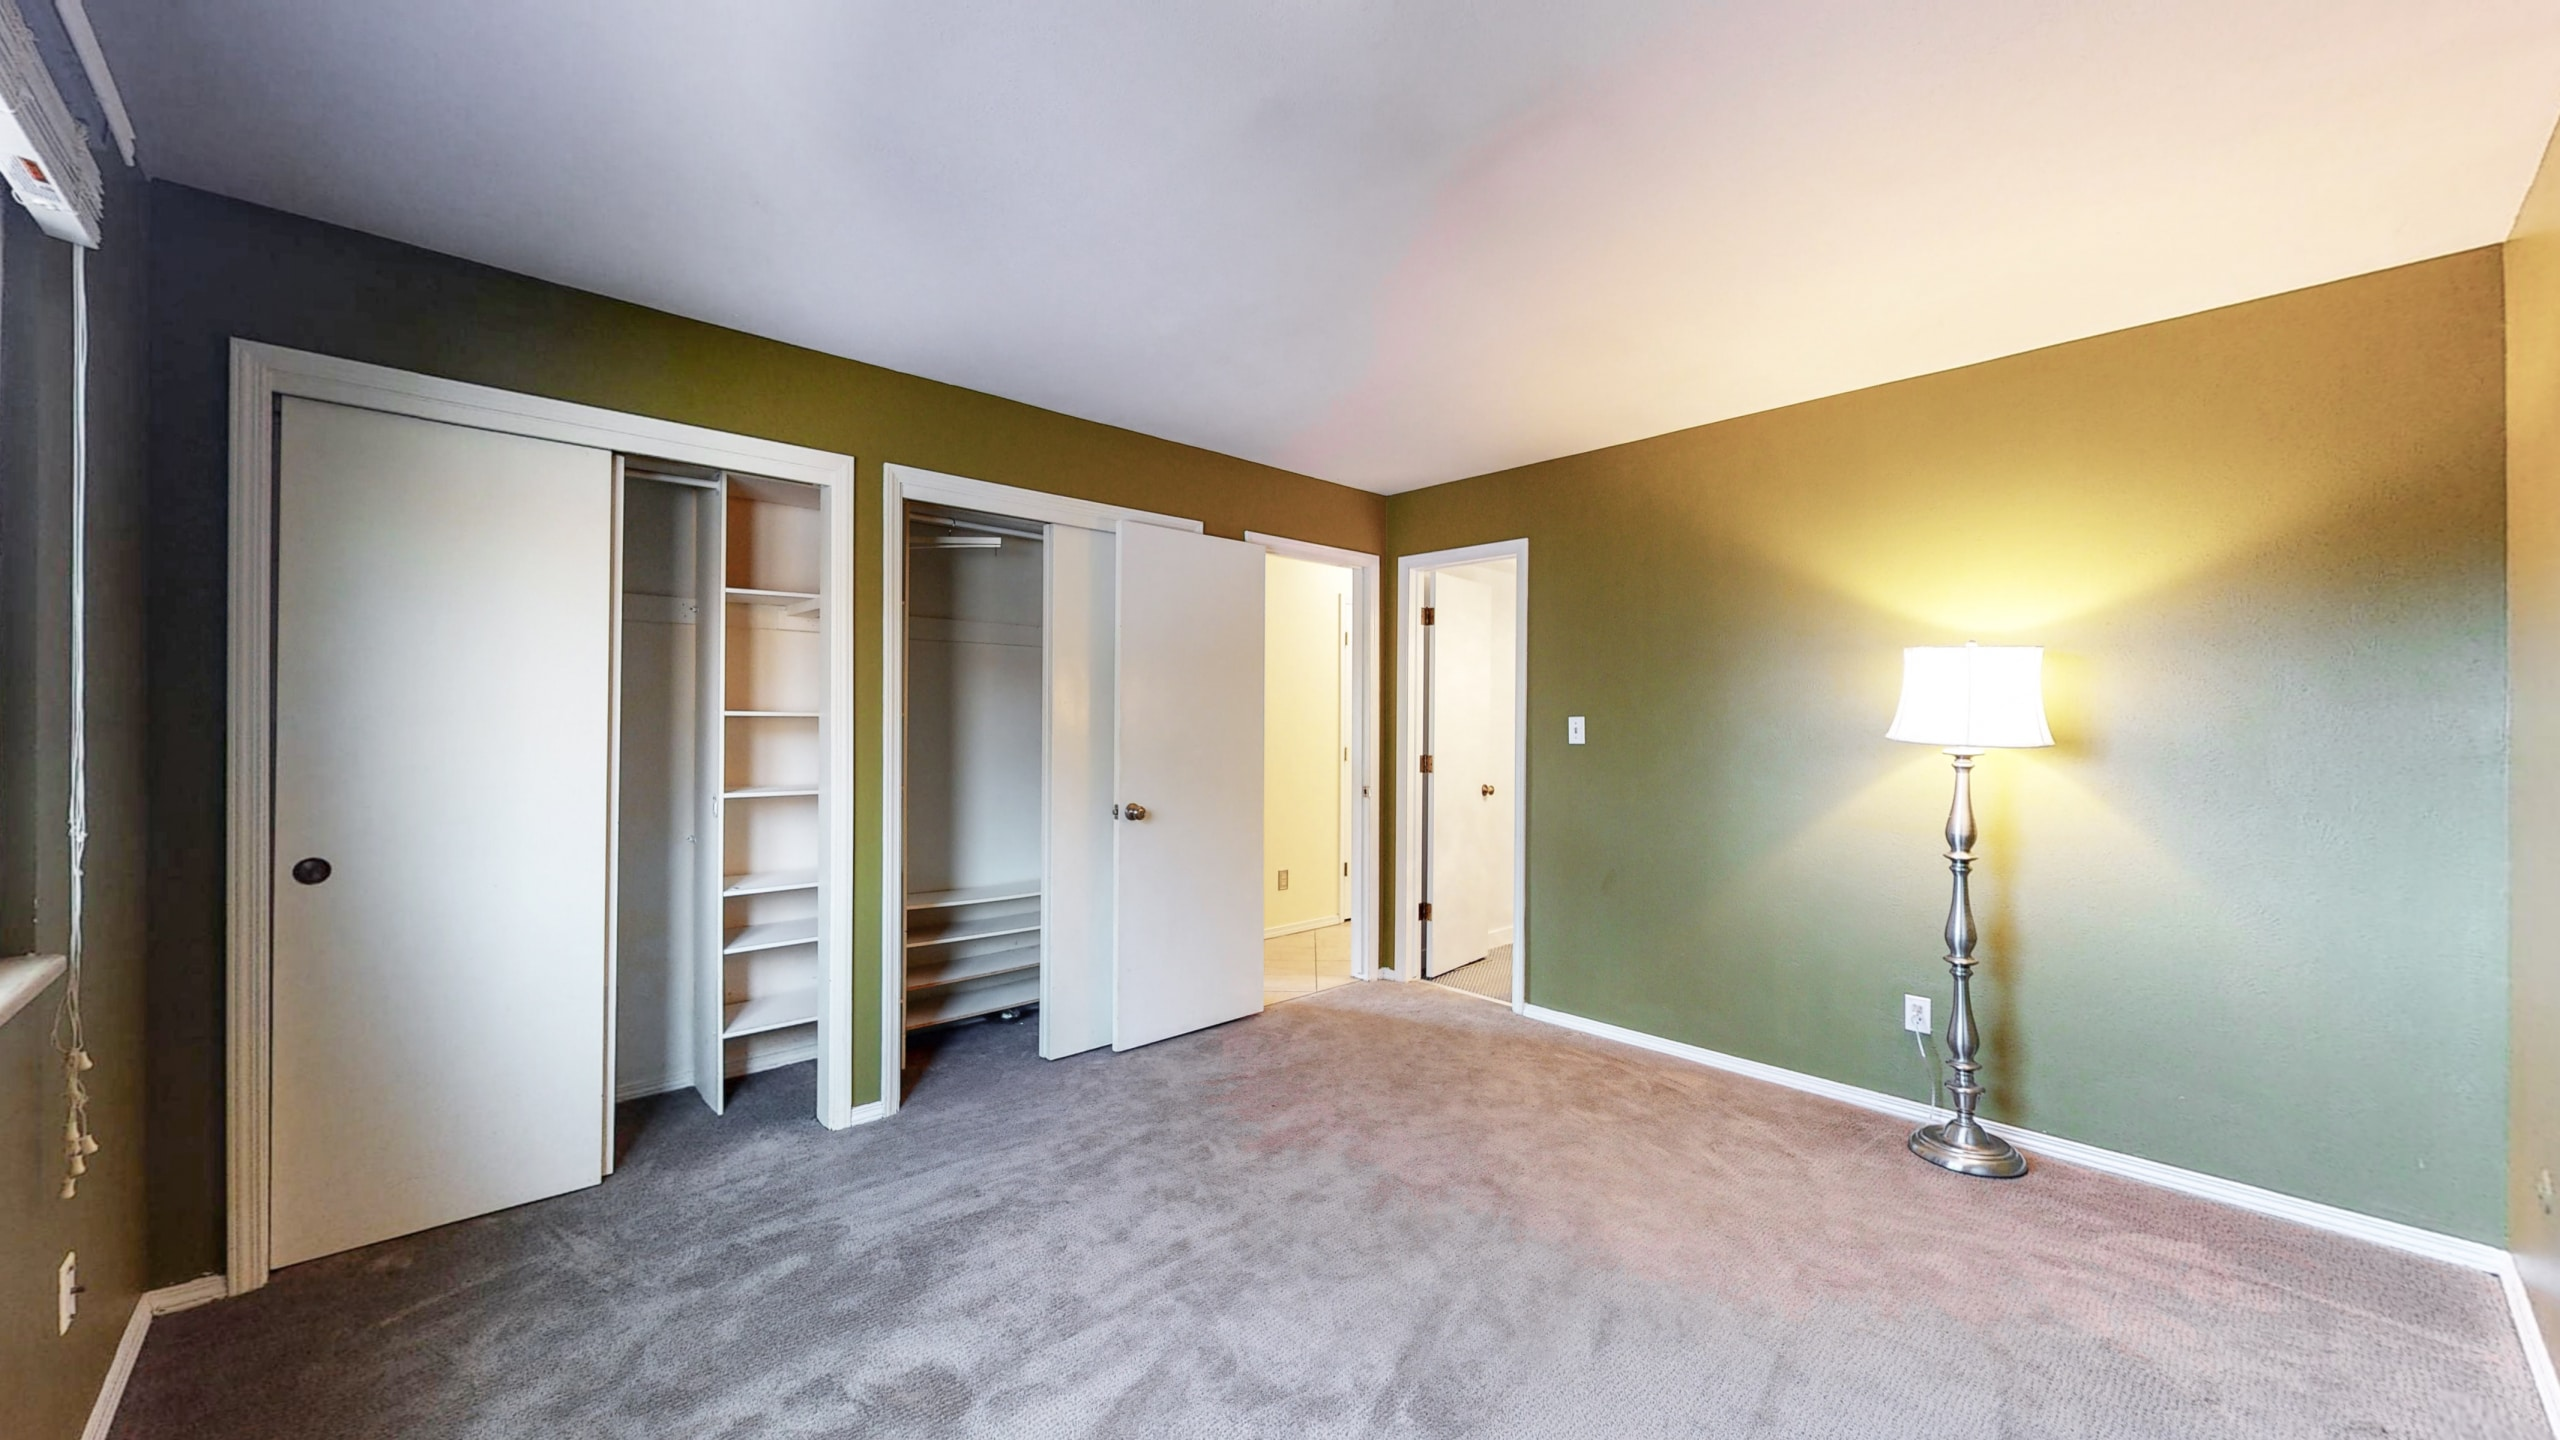 Brighton, CO home for sale, Main Floor Master, Green Walls, Updated Tile Bathroom